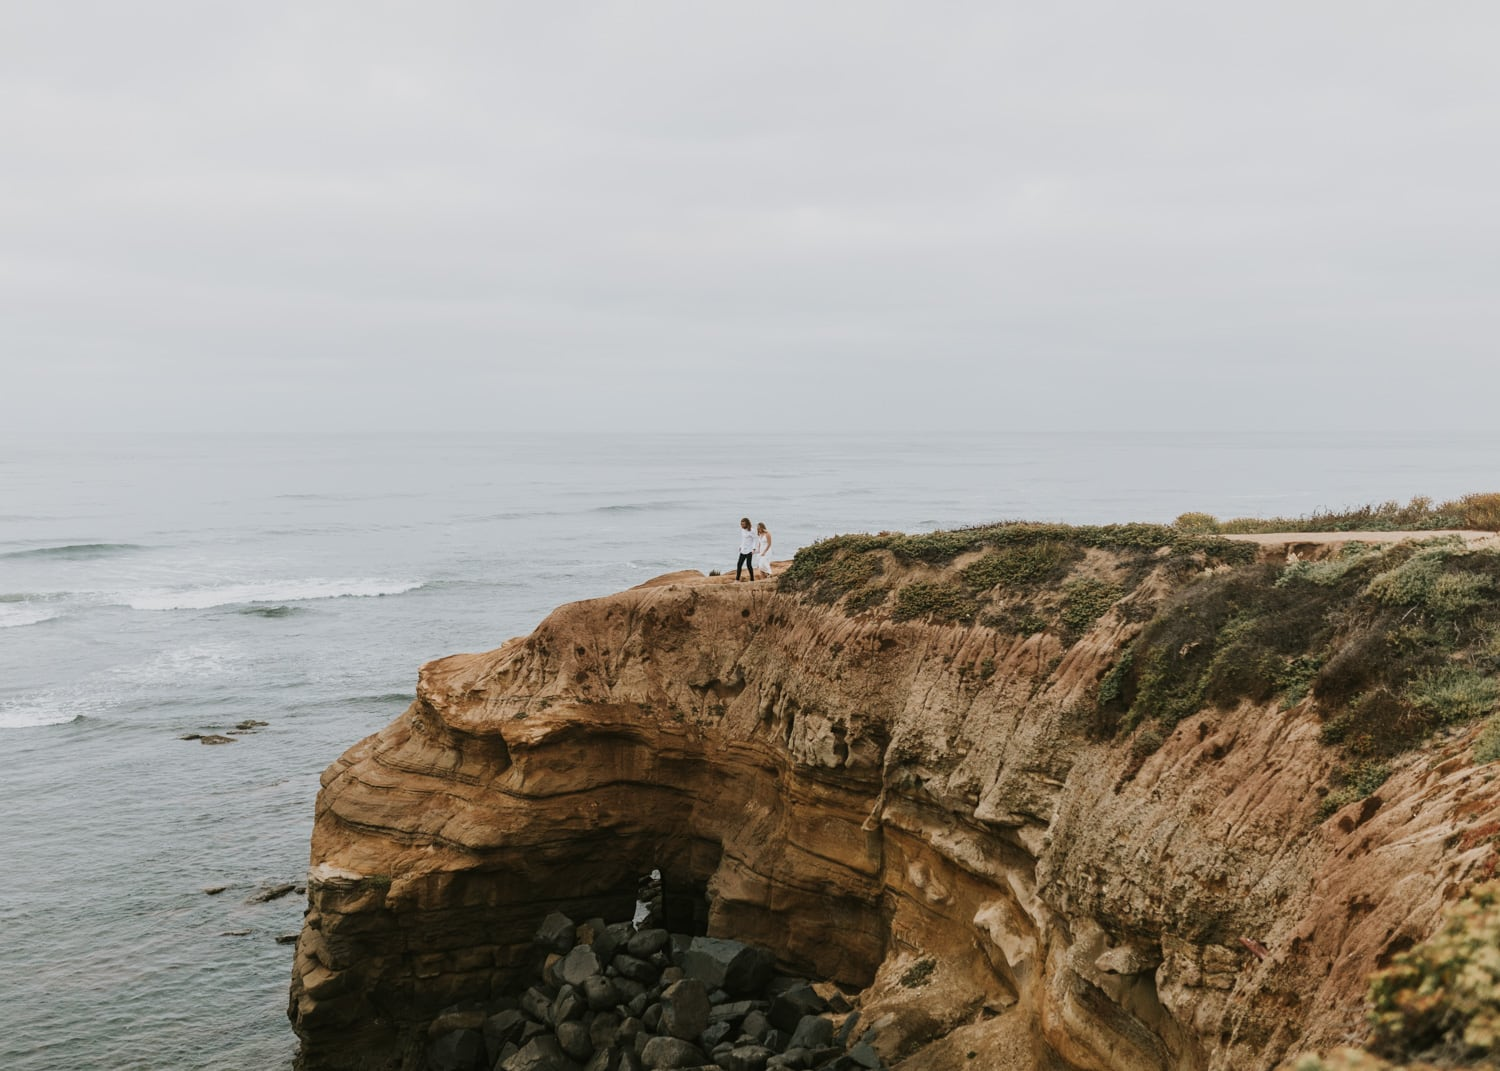 A couple eloping in California, taken by a California elopement photographer.